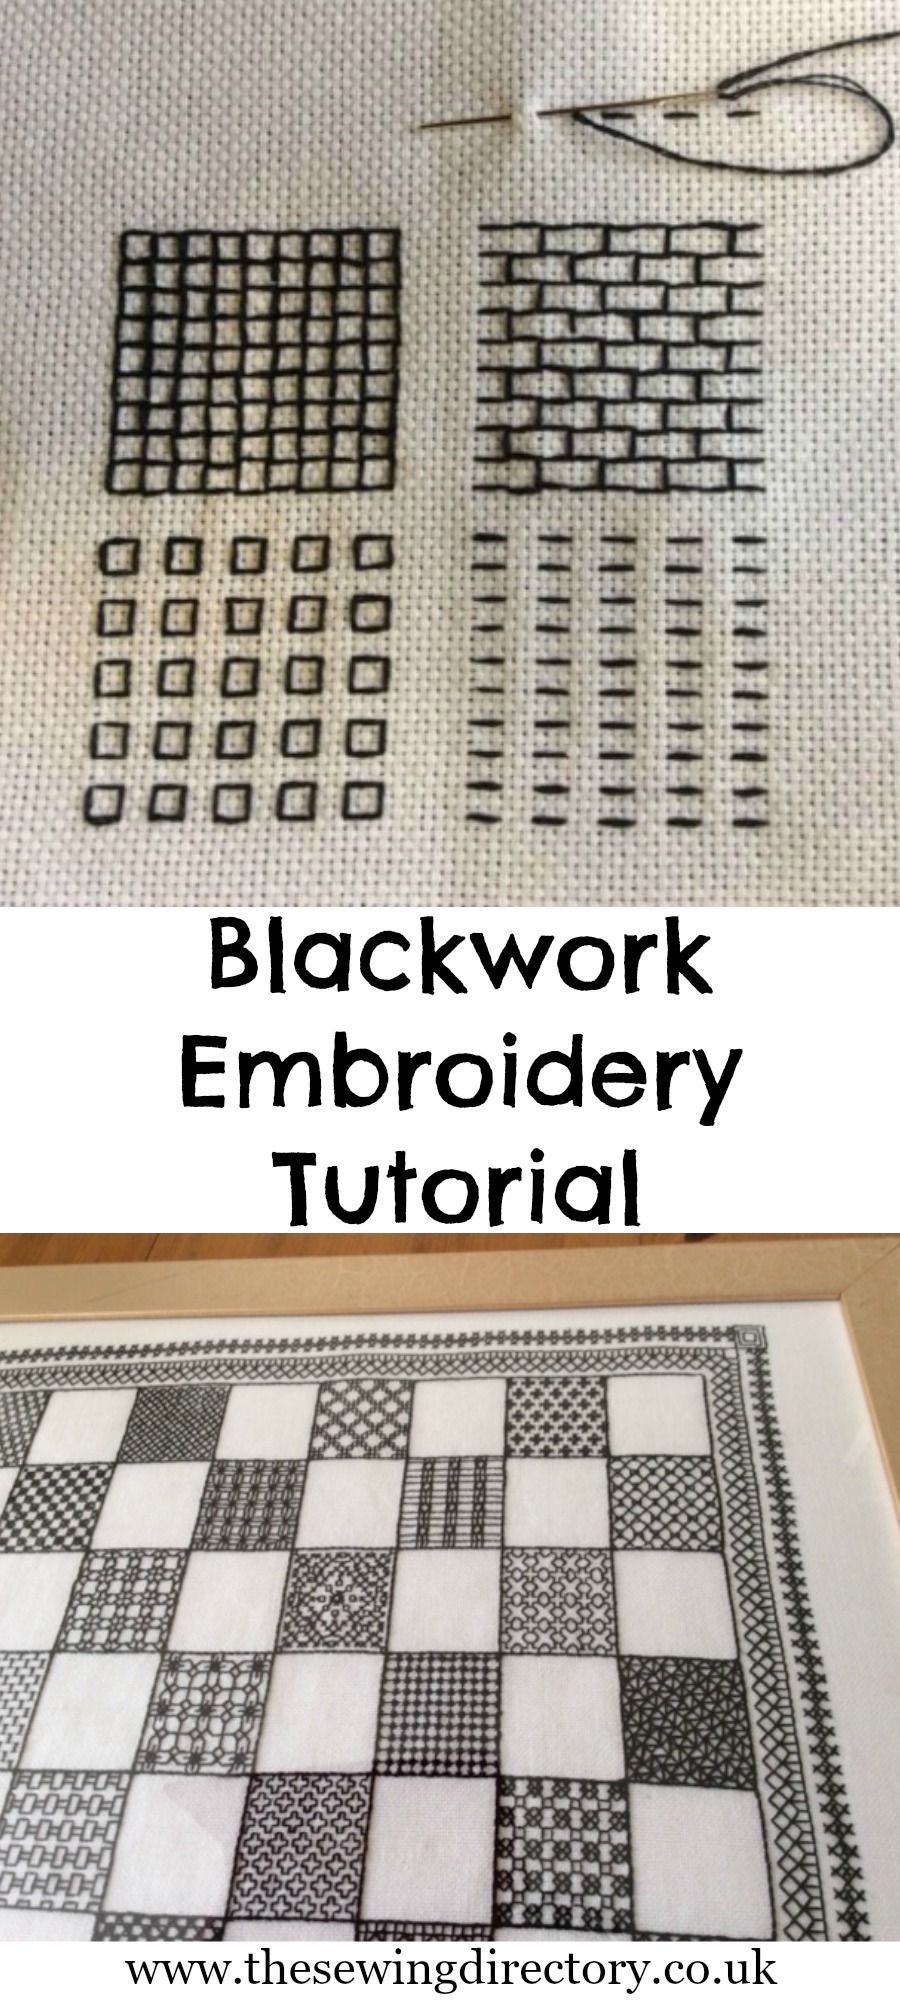 Blackwork embroidery tutorial part of our part hand embroidery